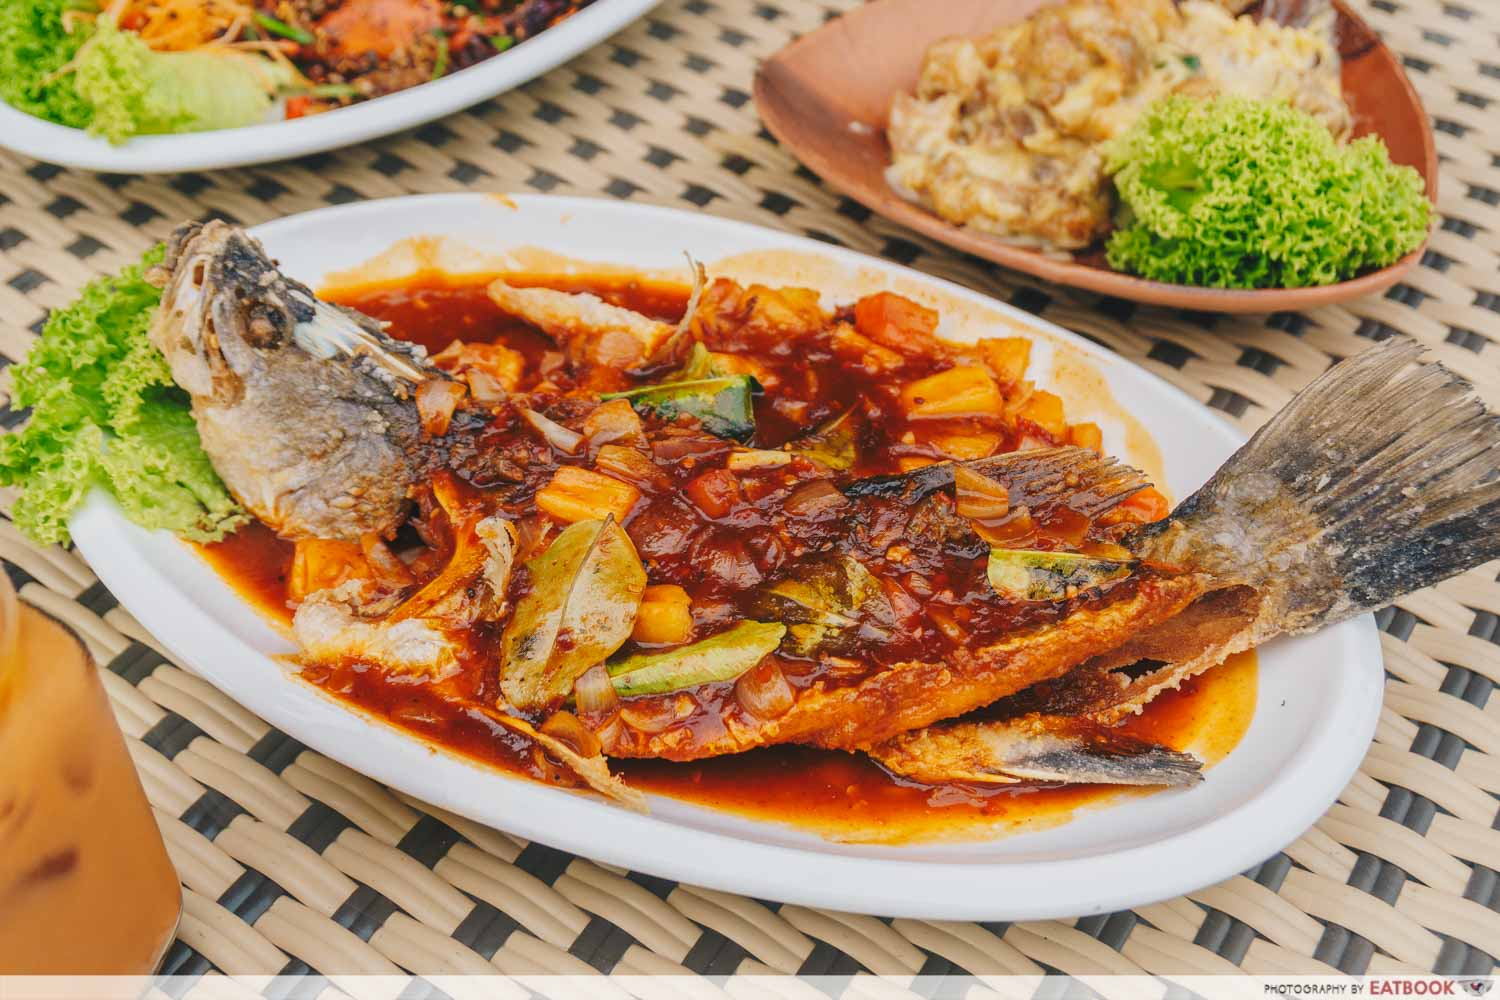 Yassin Kampung - Three Flavoured Fish